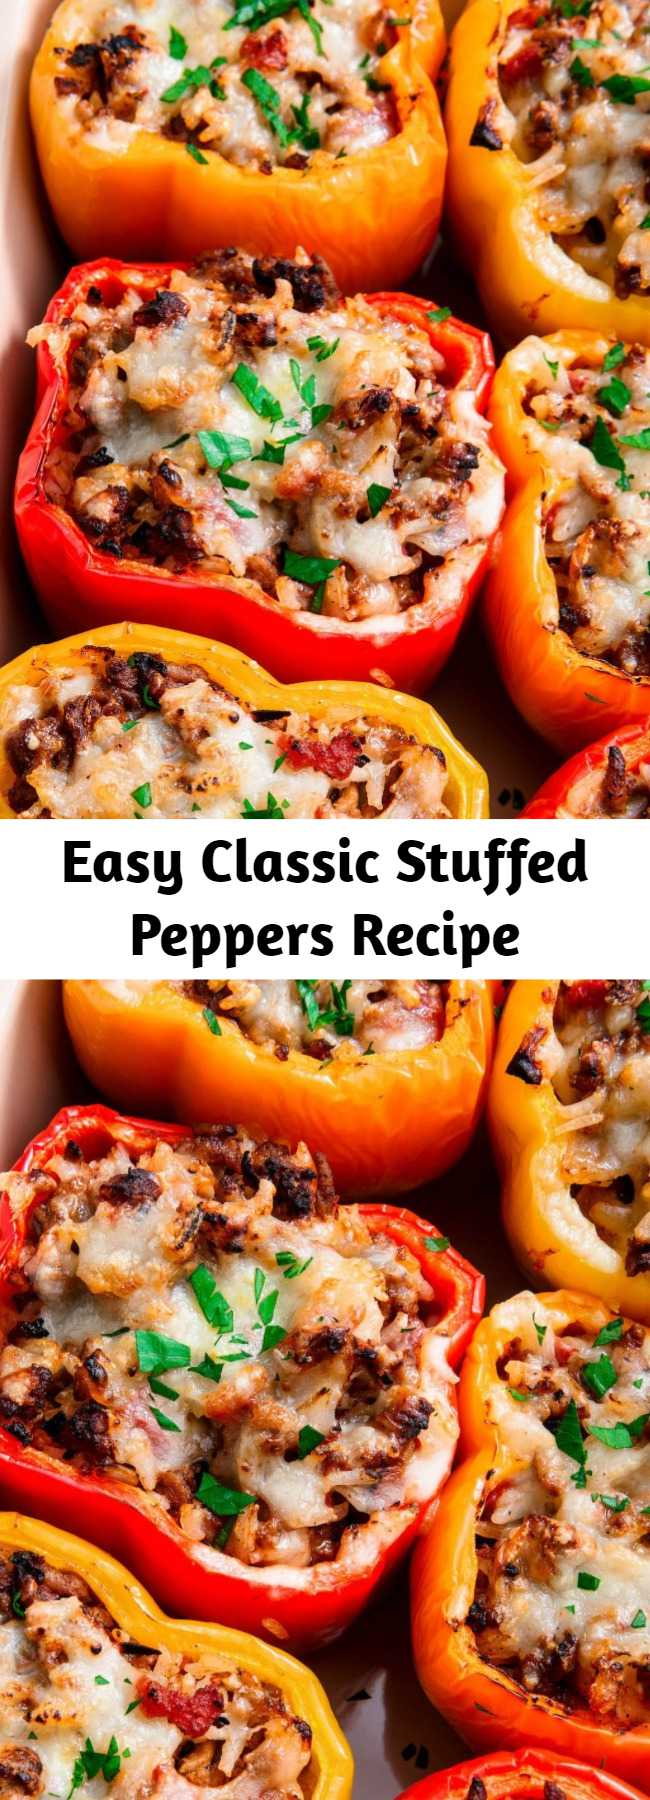 Easy Classic Stuffed Peppers Recipe - Classic Stuffed Peppers are the fast family dinner you need. #recipe #easy #easyrecipes #stuffedpeppers #peppers #dinner #dinnerrecipes #groundbeef #cheese #healthy #lowcarb #lowcarbrecipes #family